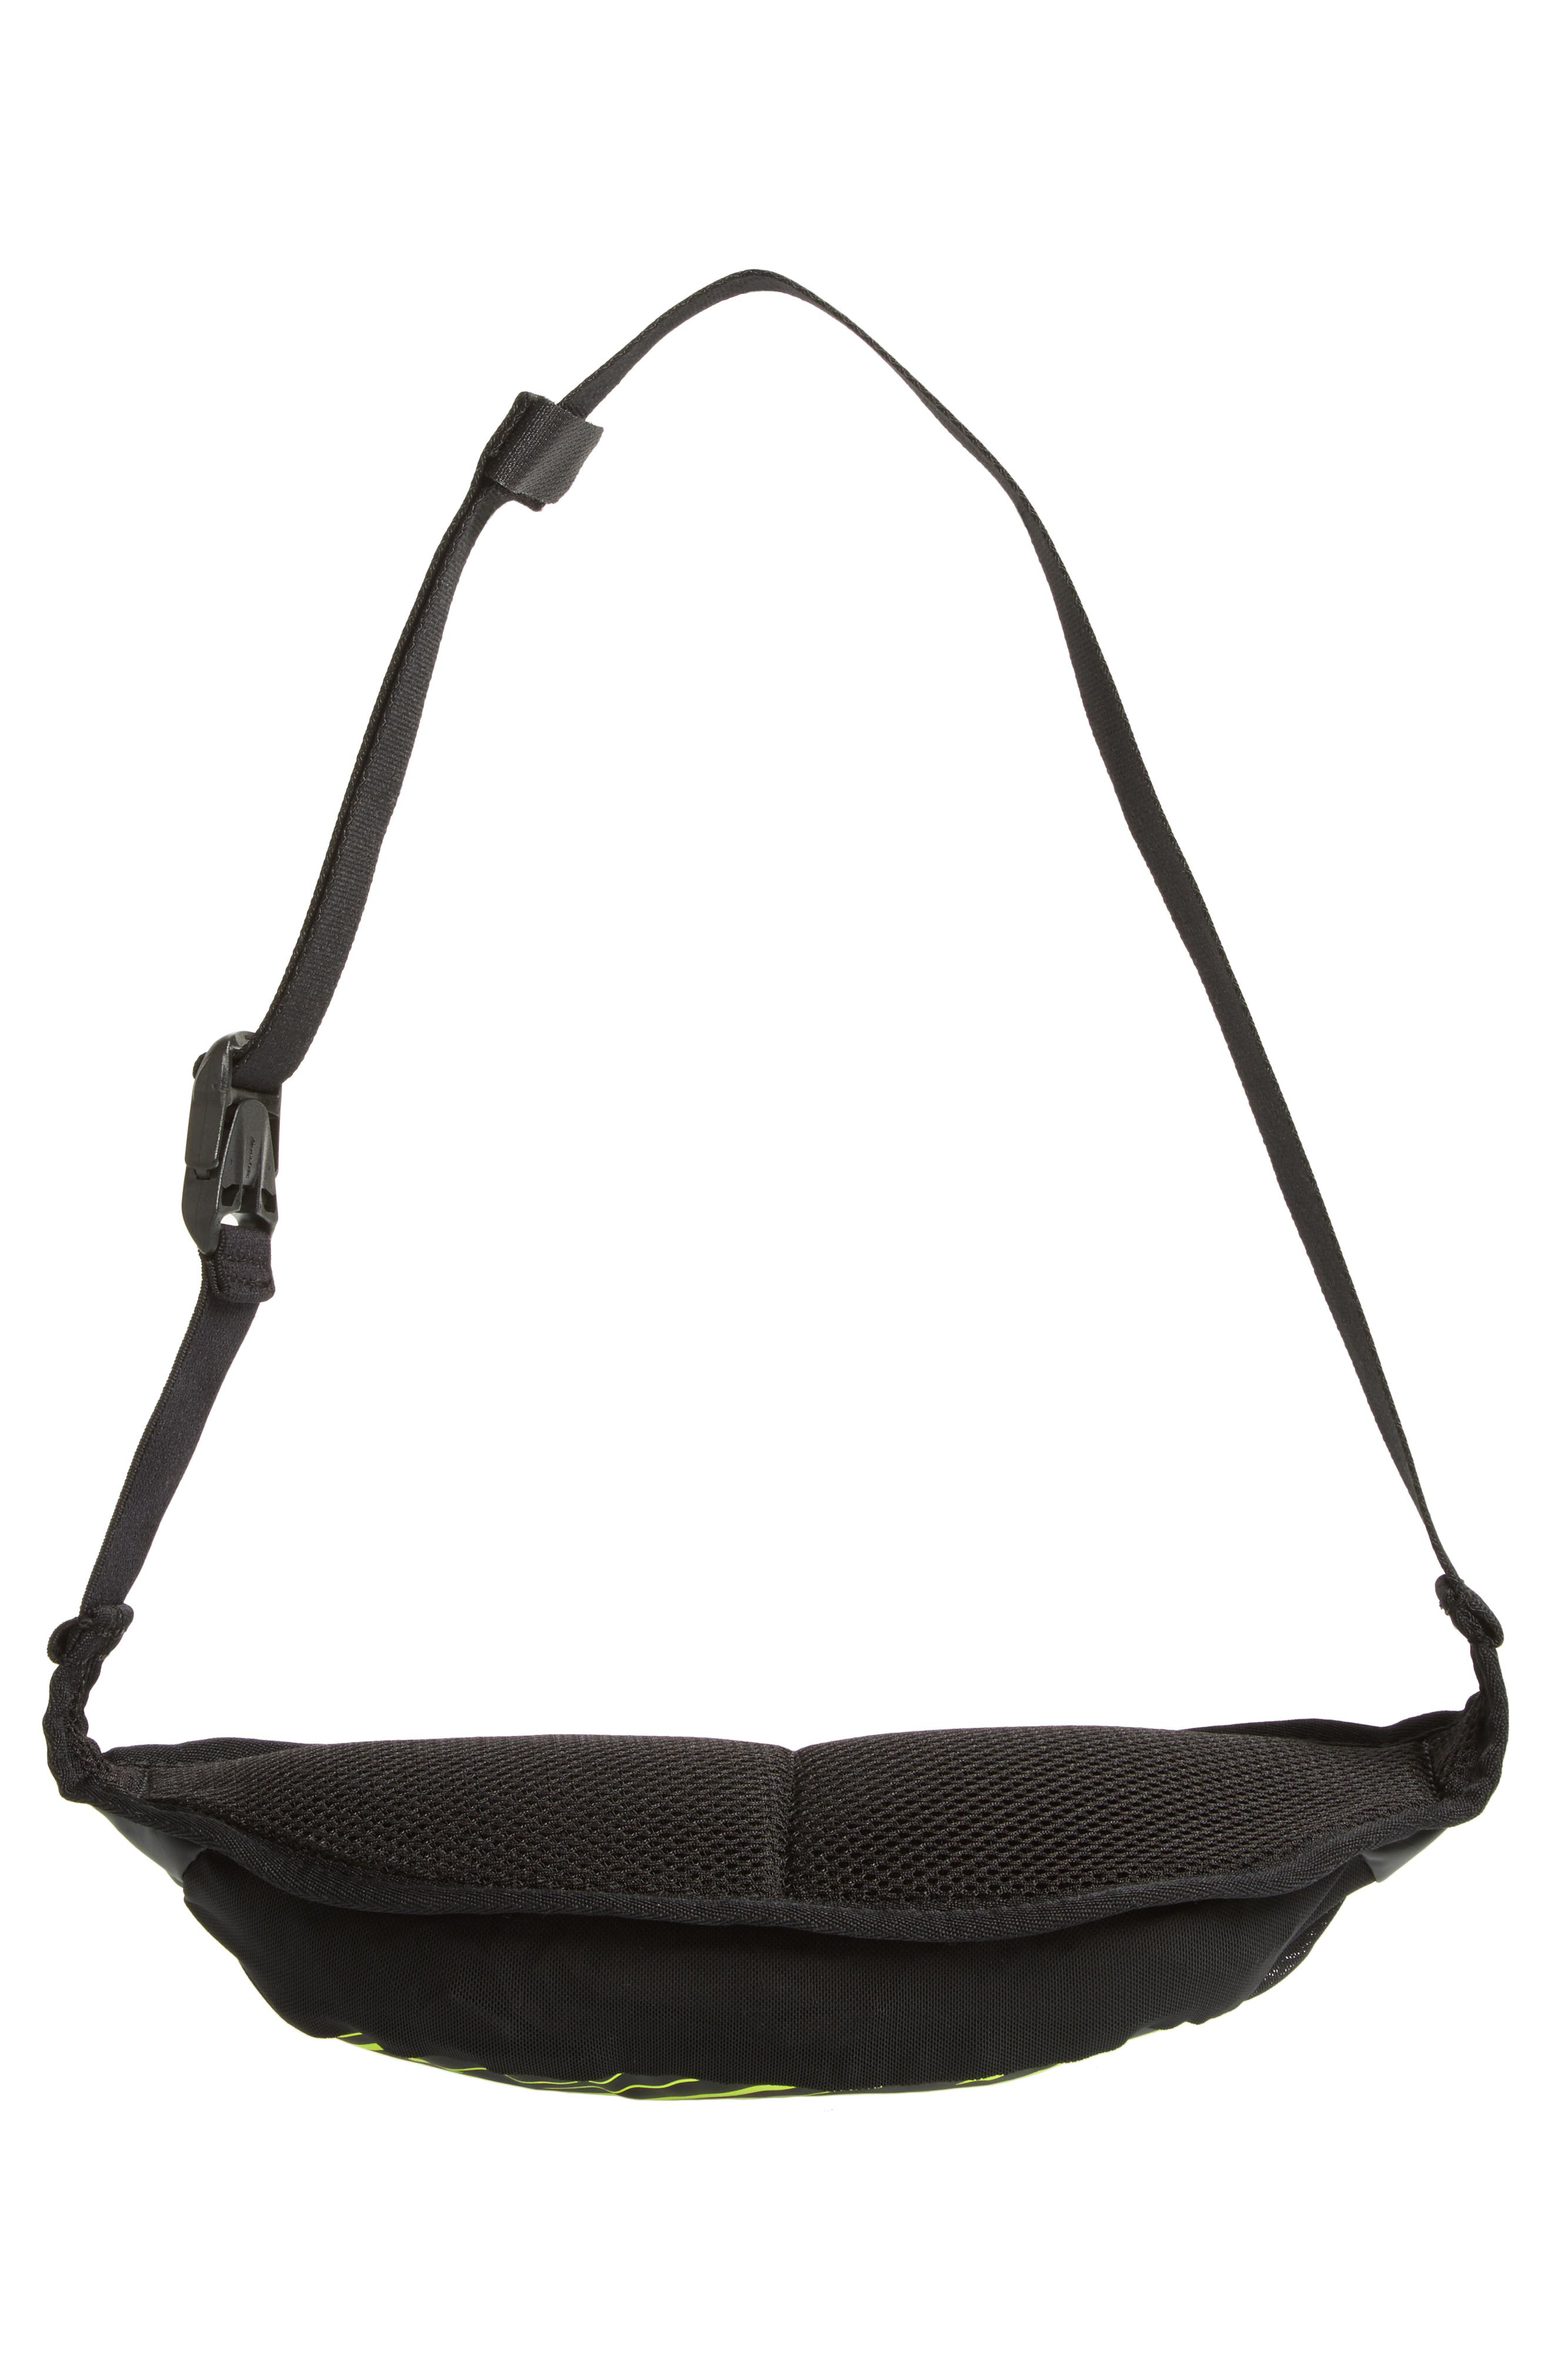 Large Capacity Hip Pack,                             Alternate thumbnail 6, color,                             019